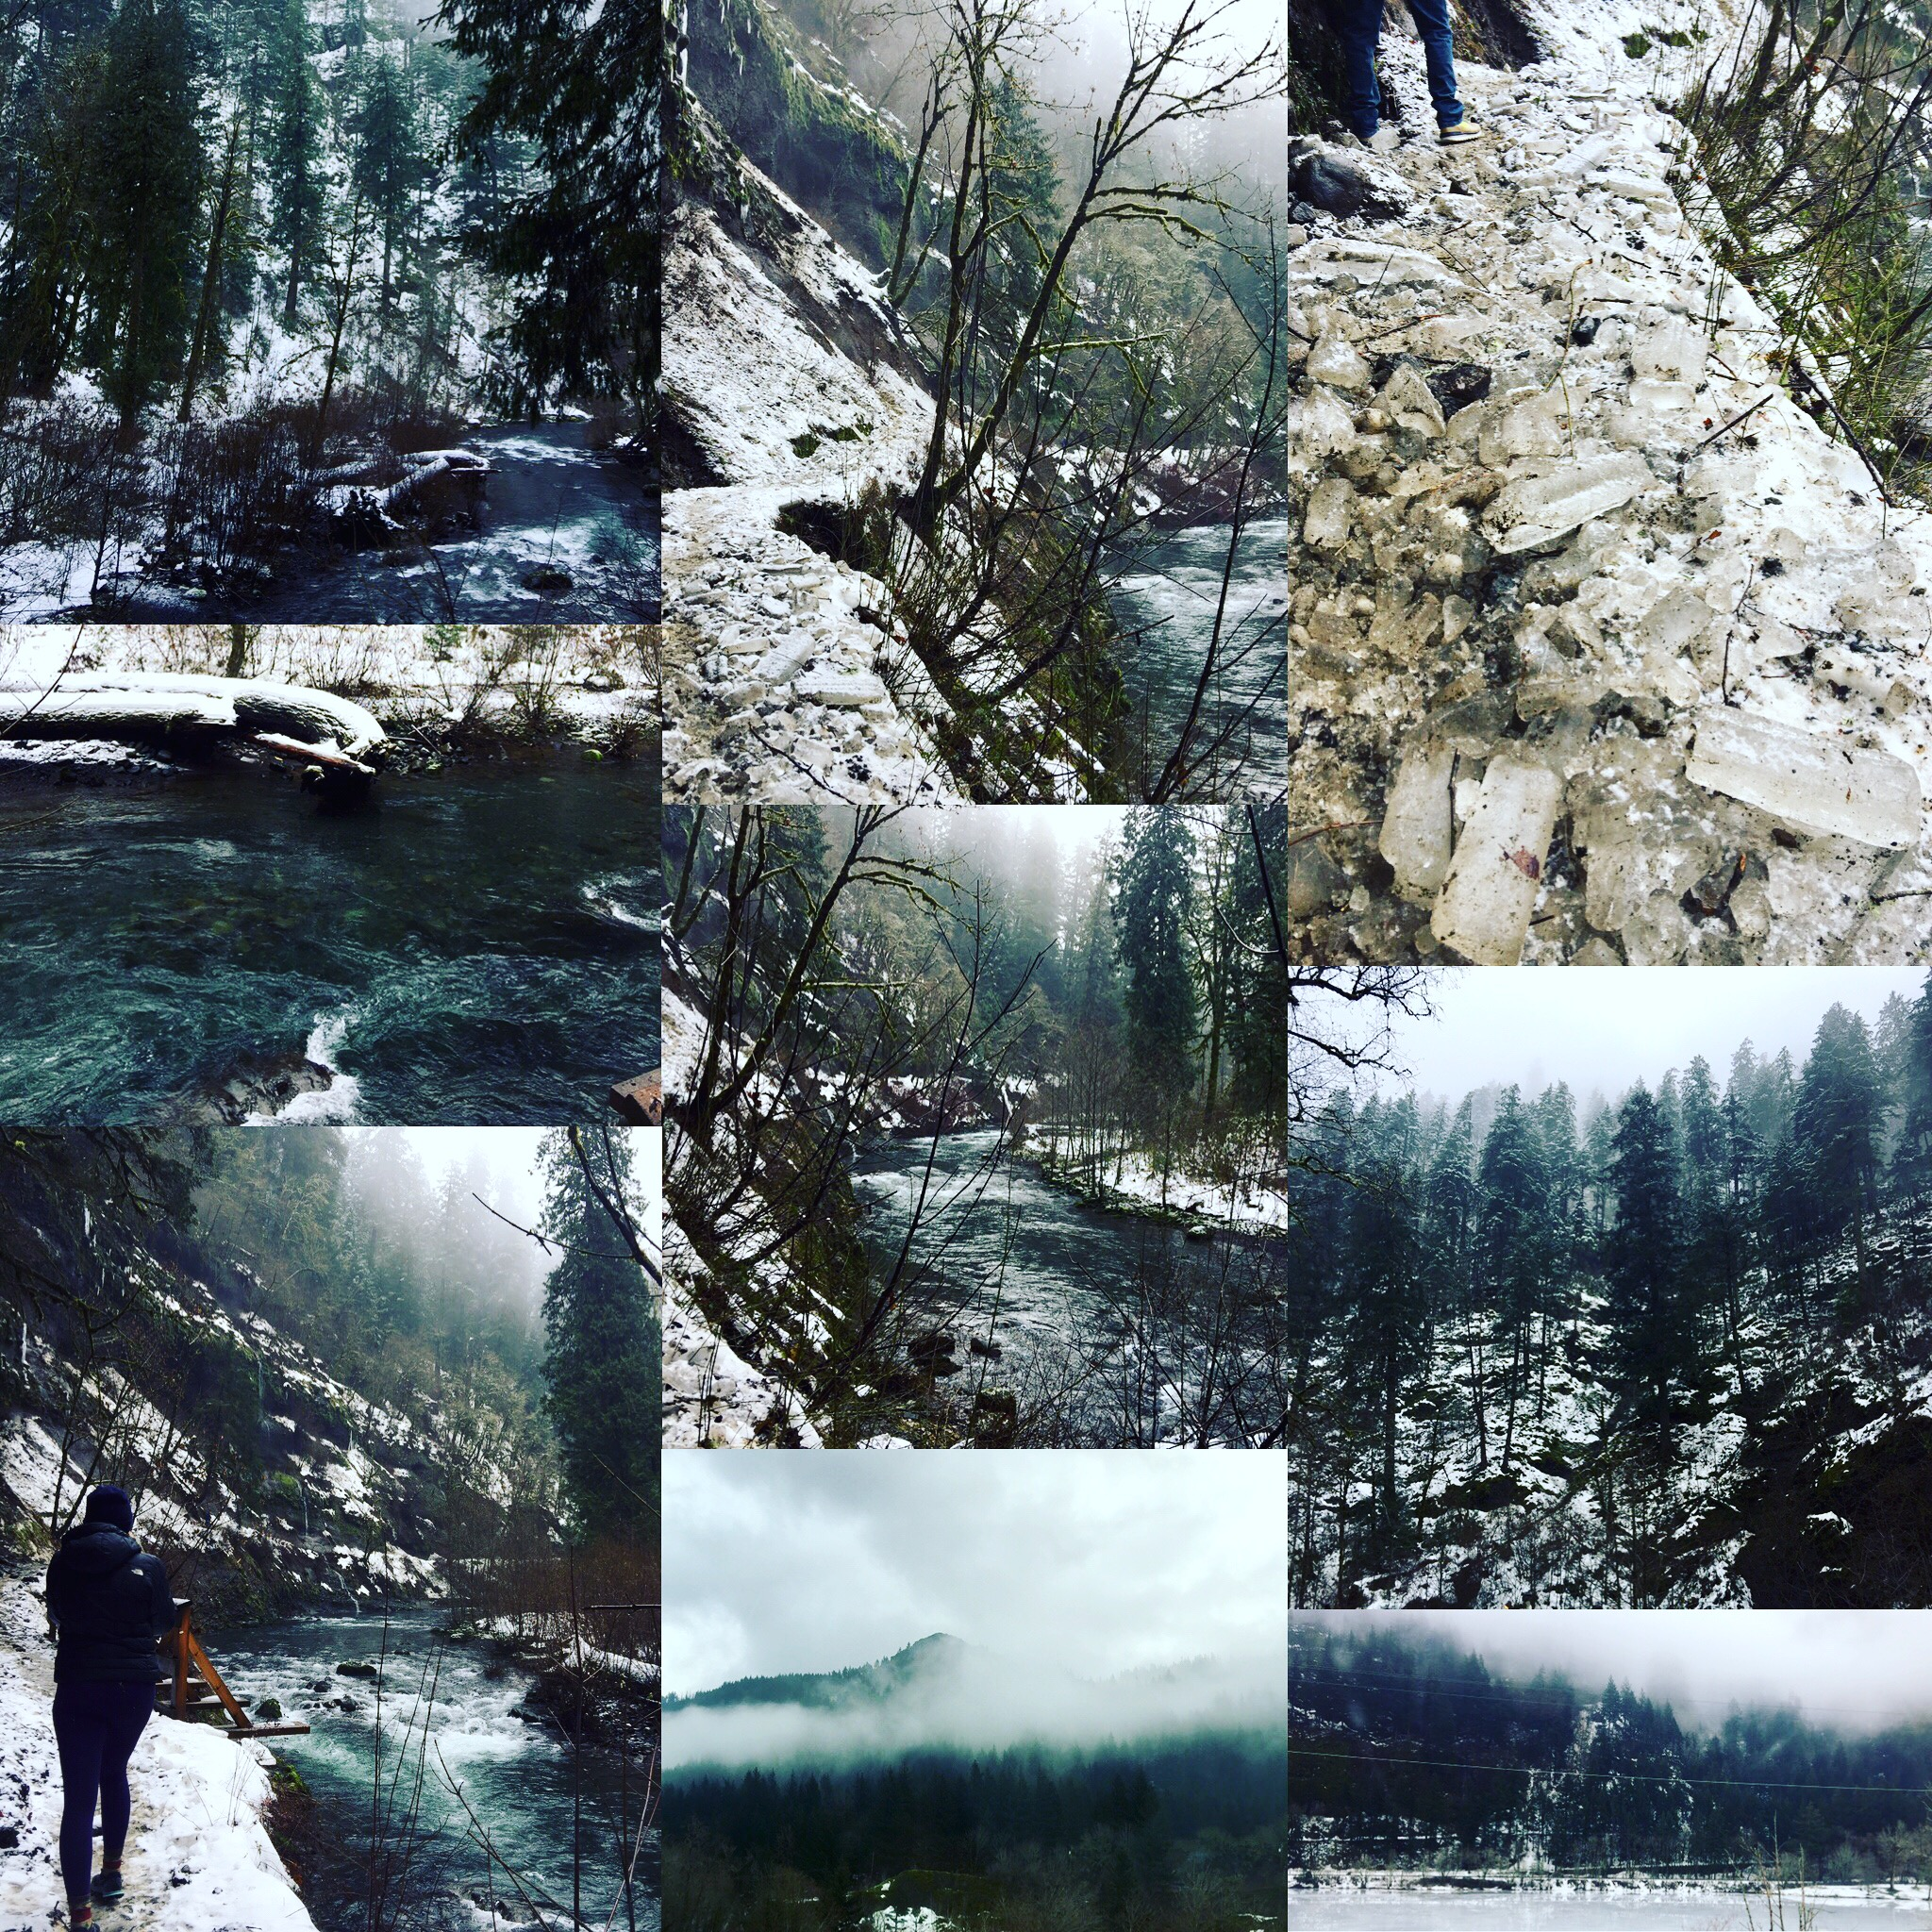 We hiked Eagle Creek at the first part of winter.